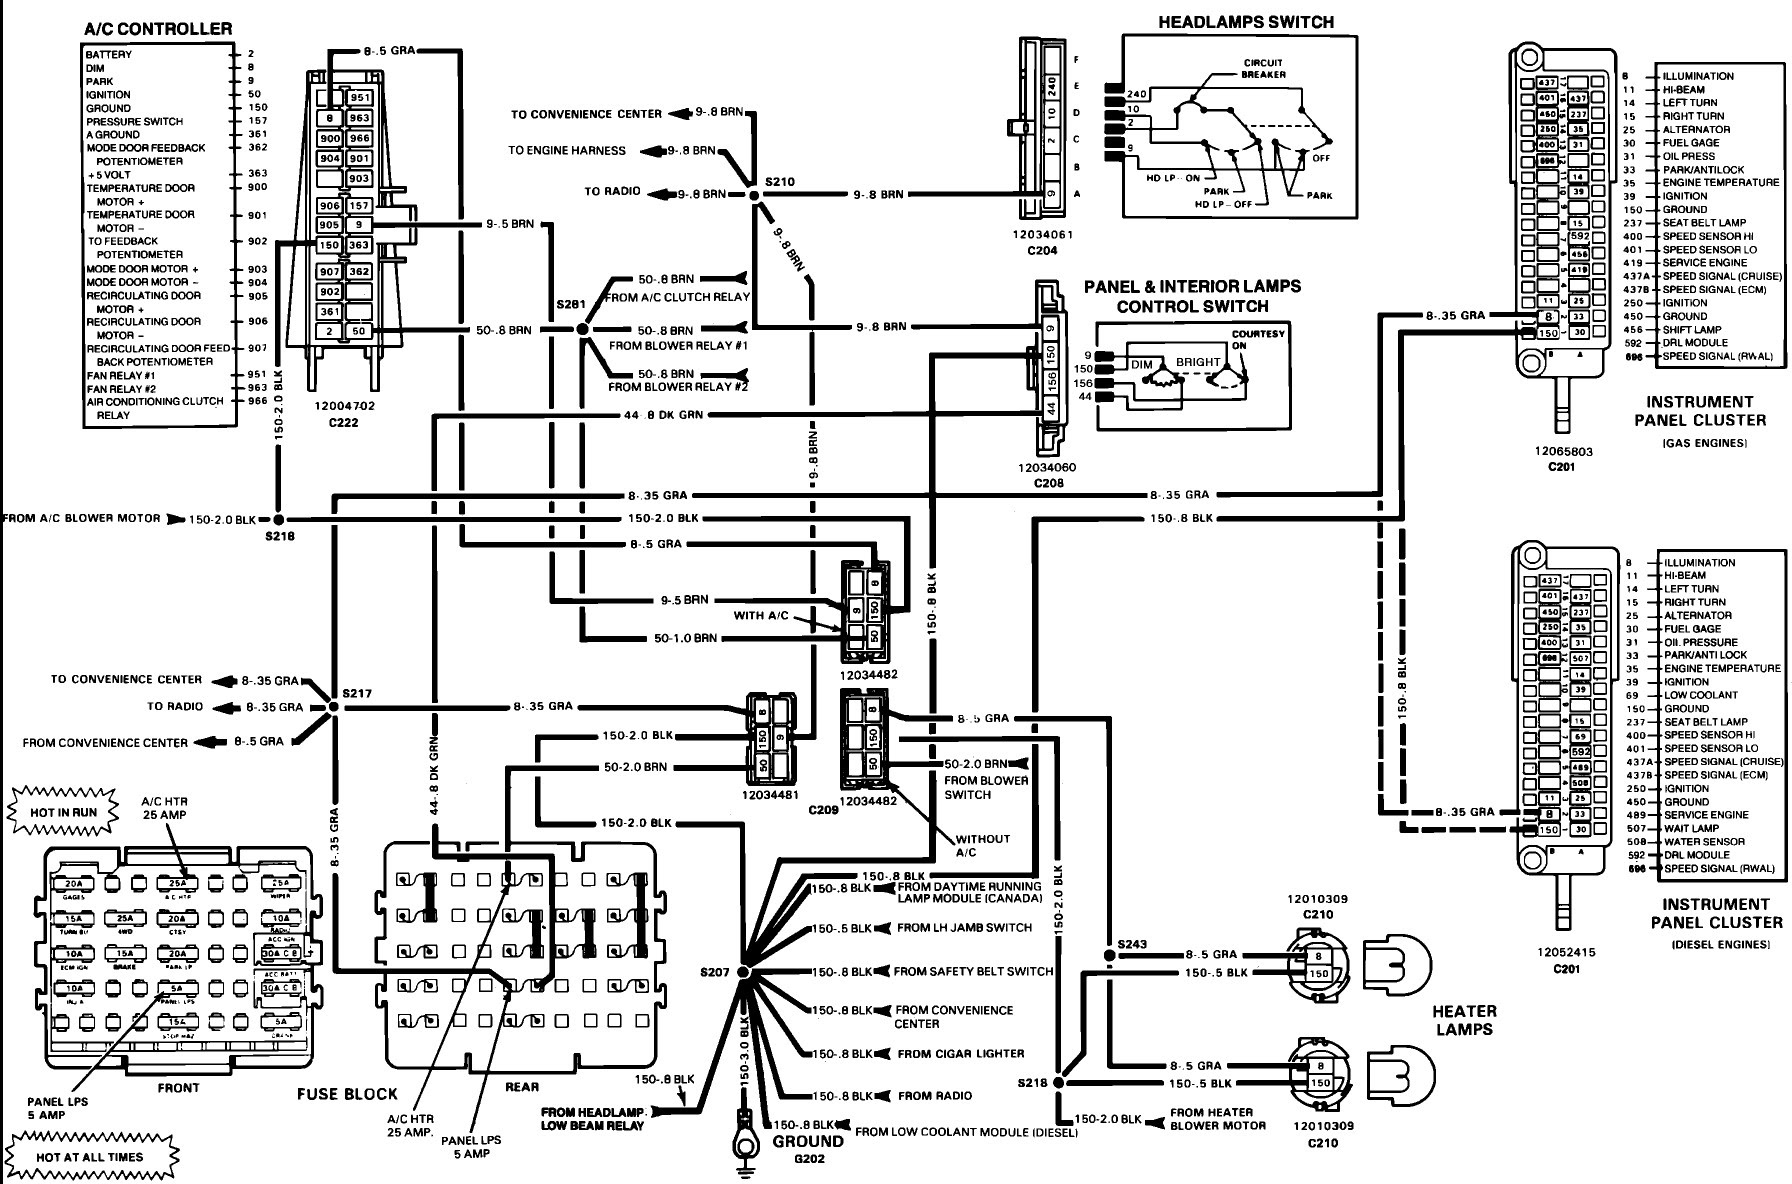 1990 Gmc Wiring Diagrams - Wiring Diagrams Name slim-global -  slim-global.illabirintodellacreativita.it | 1990 Gm Truck Ignition Wiring Diagram |  | slim-global.illabirintodellacreativita.it